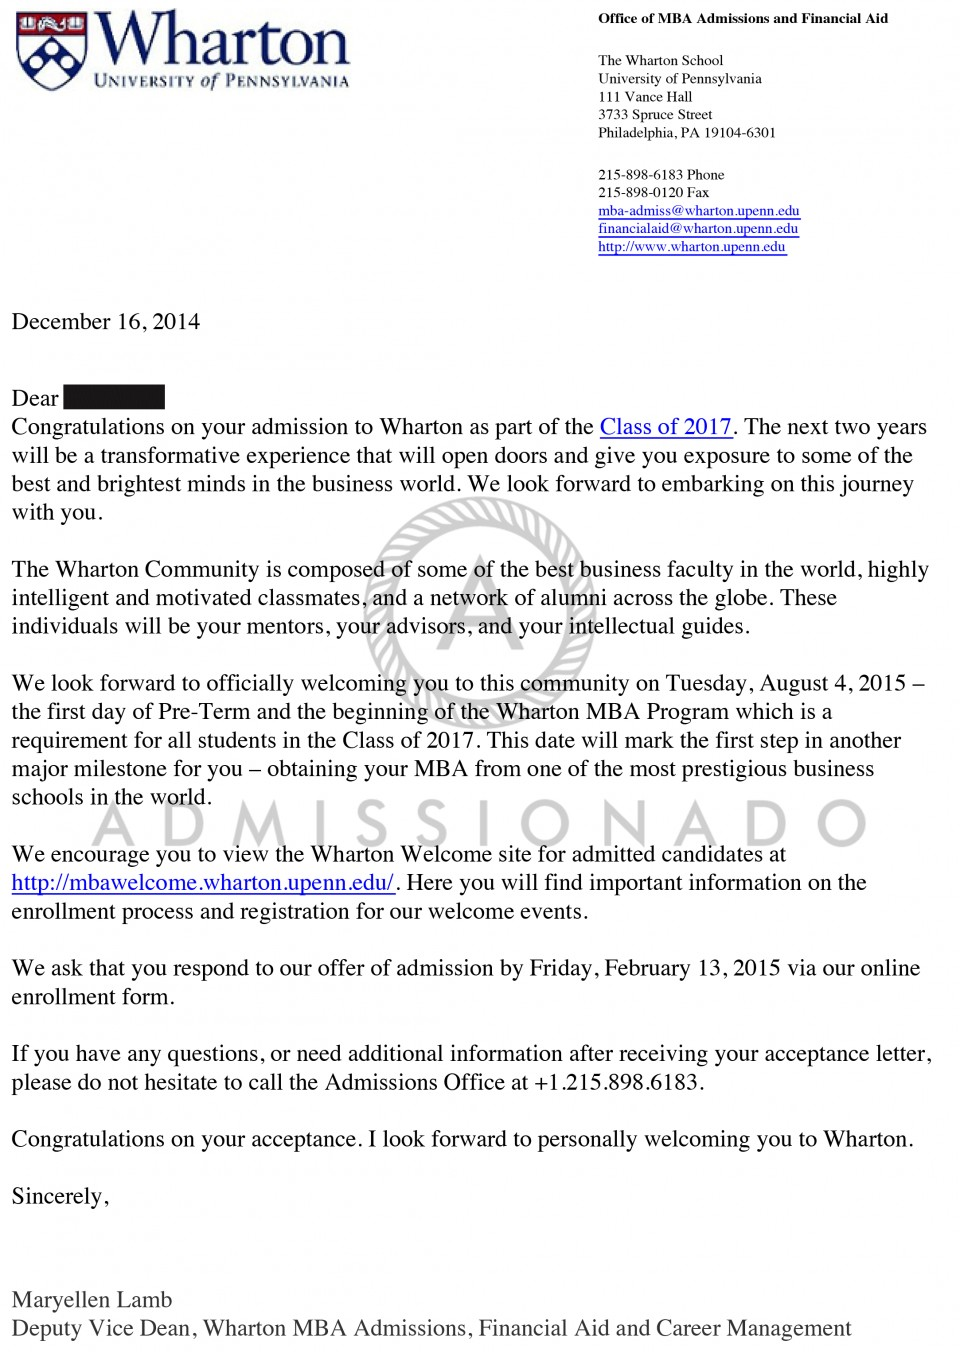 002 Accepted Stanford Application Essay Custom Paper Help Pin Acceptance Letter On Pint College Essays That Were Upenn Remarkable Prompts Supplement 960